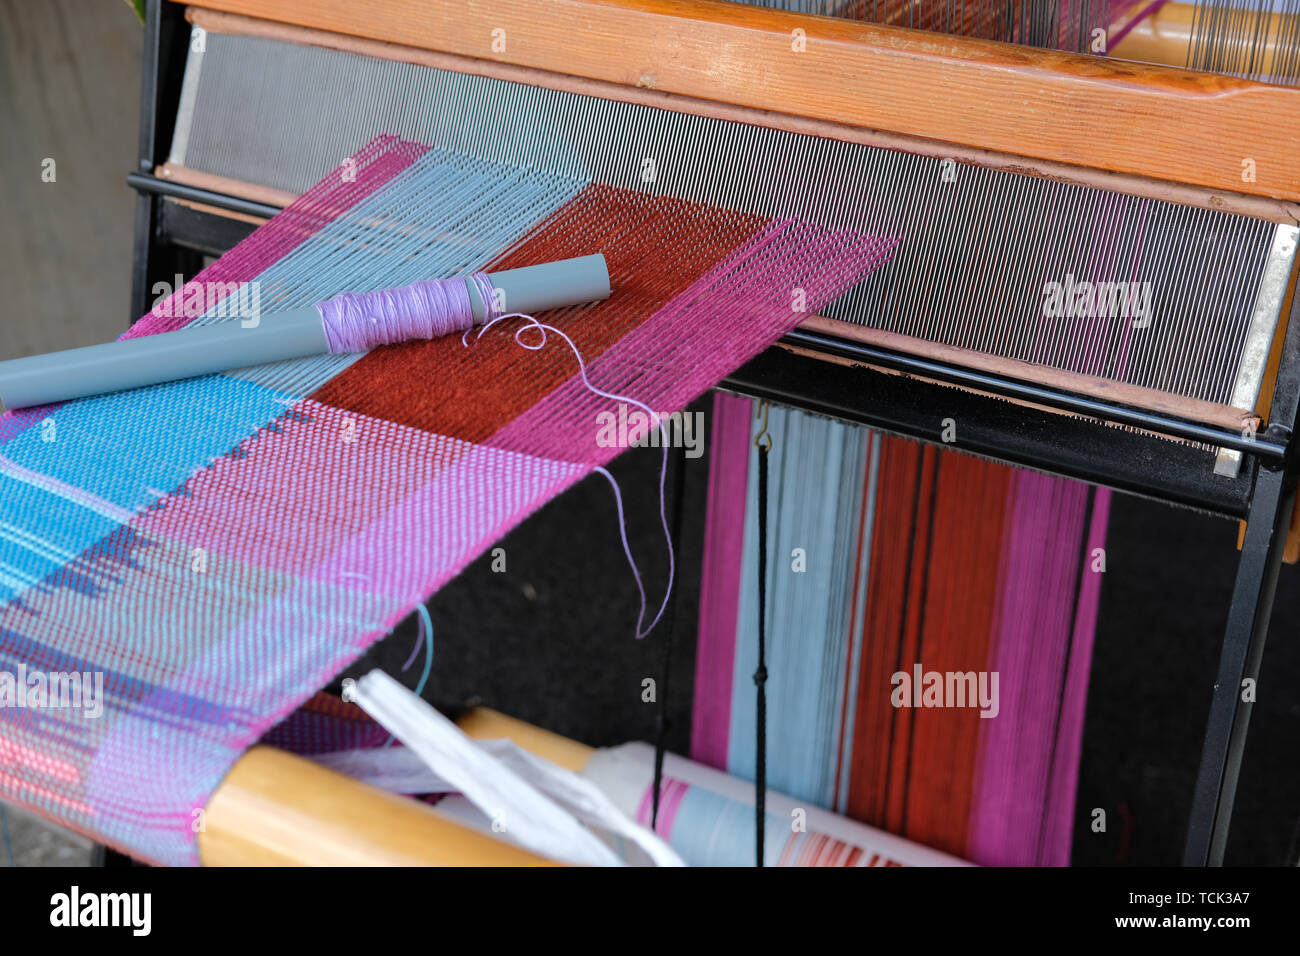 traditional weaving machine wooden loom for making textile - Stock Image